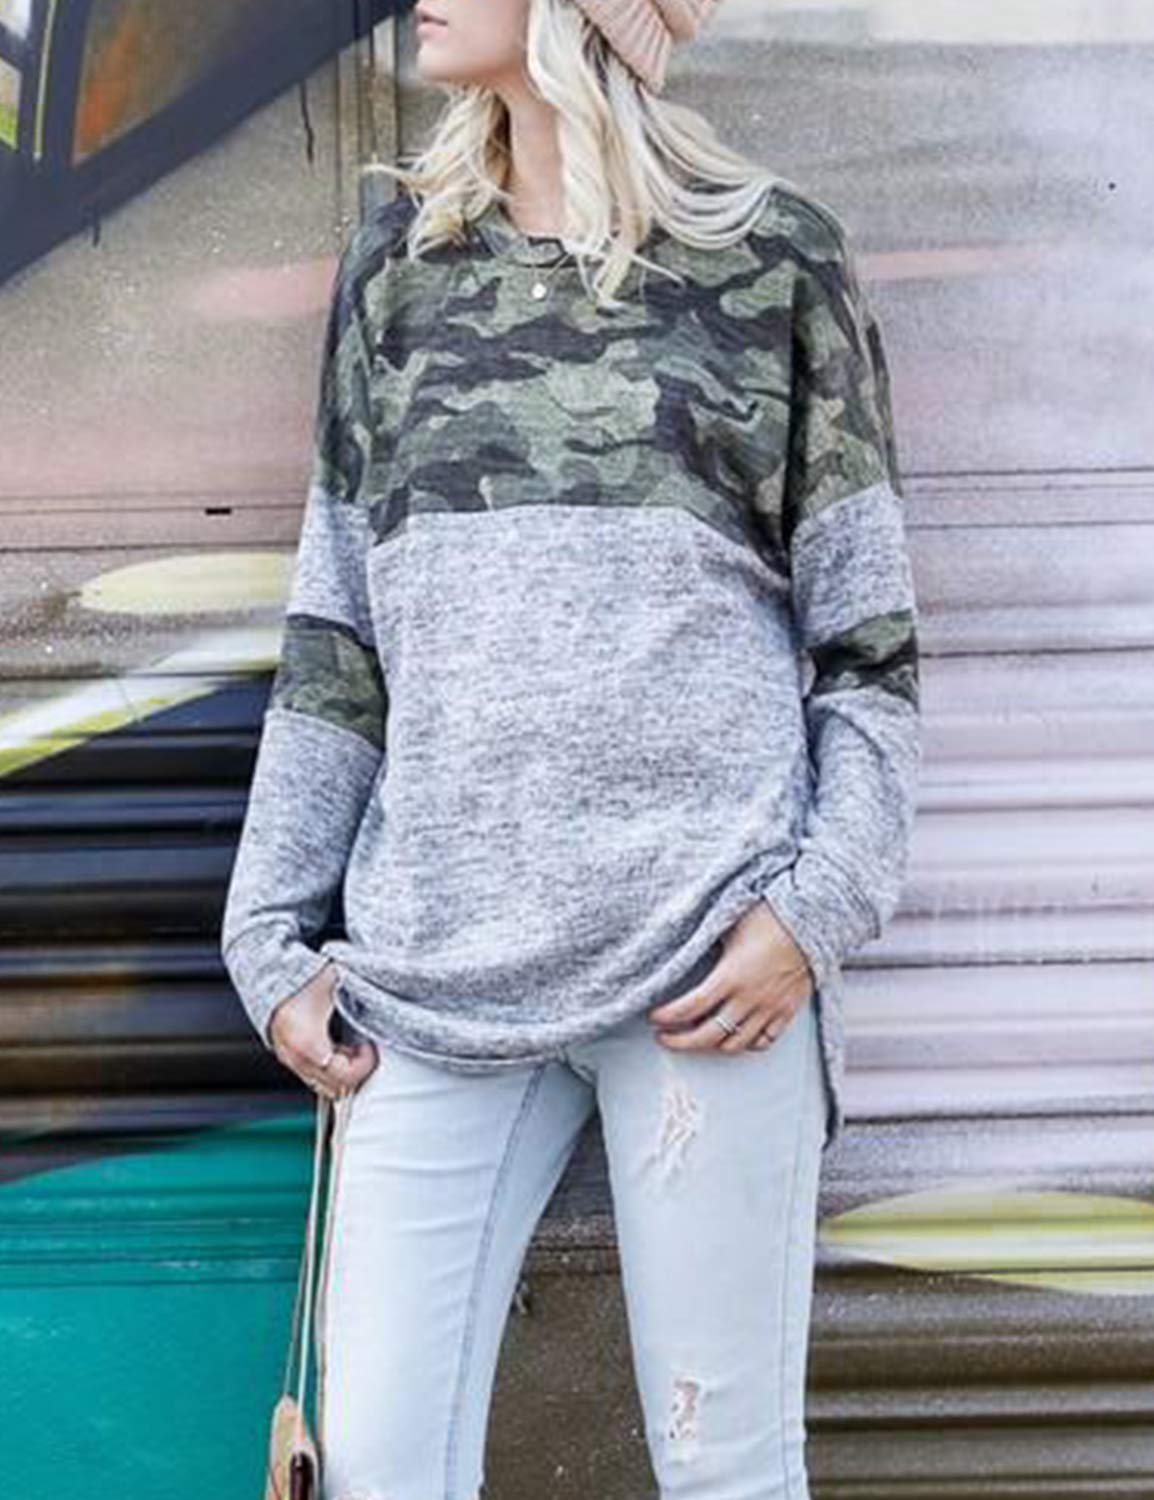 Blooming Jelly Women\'s Color Block Camo T Shirt Long Sleeve Crew Neck Casual Pullover Top (S, Camouflage)